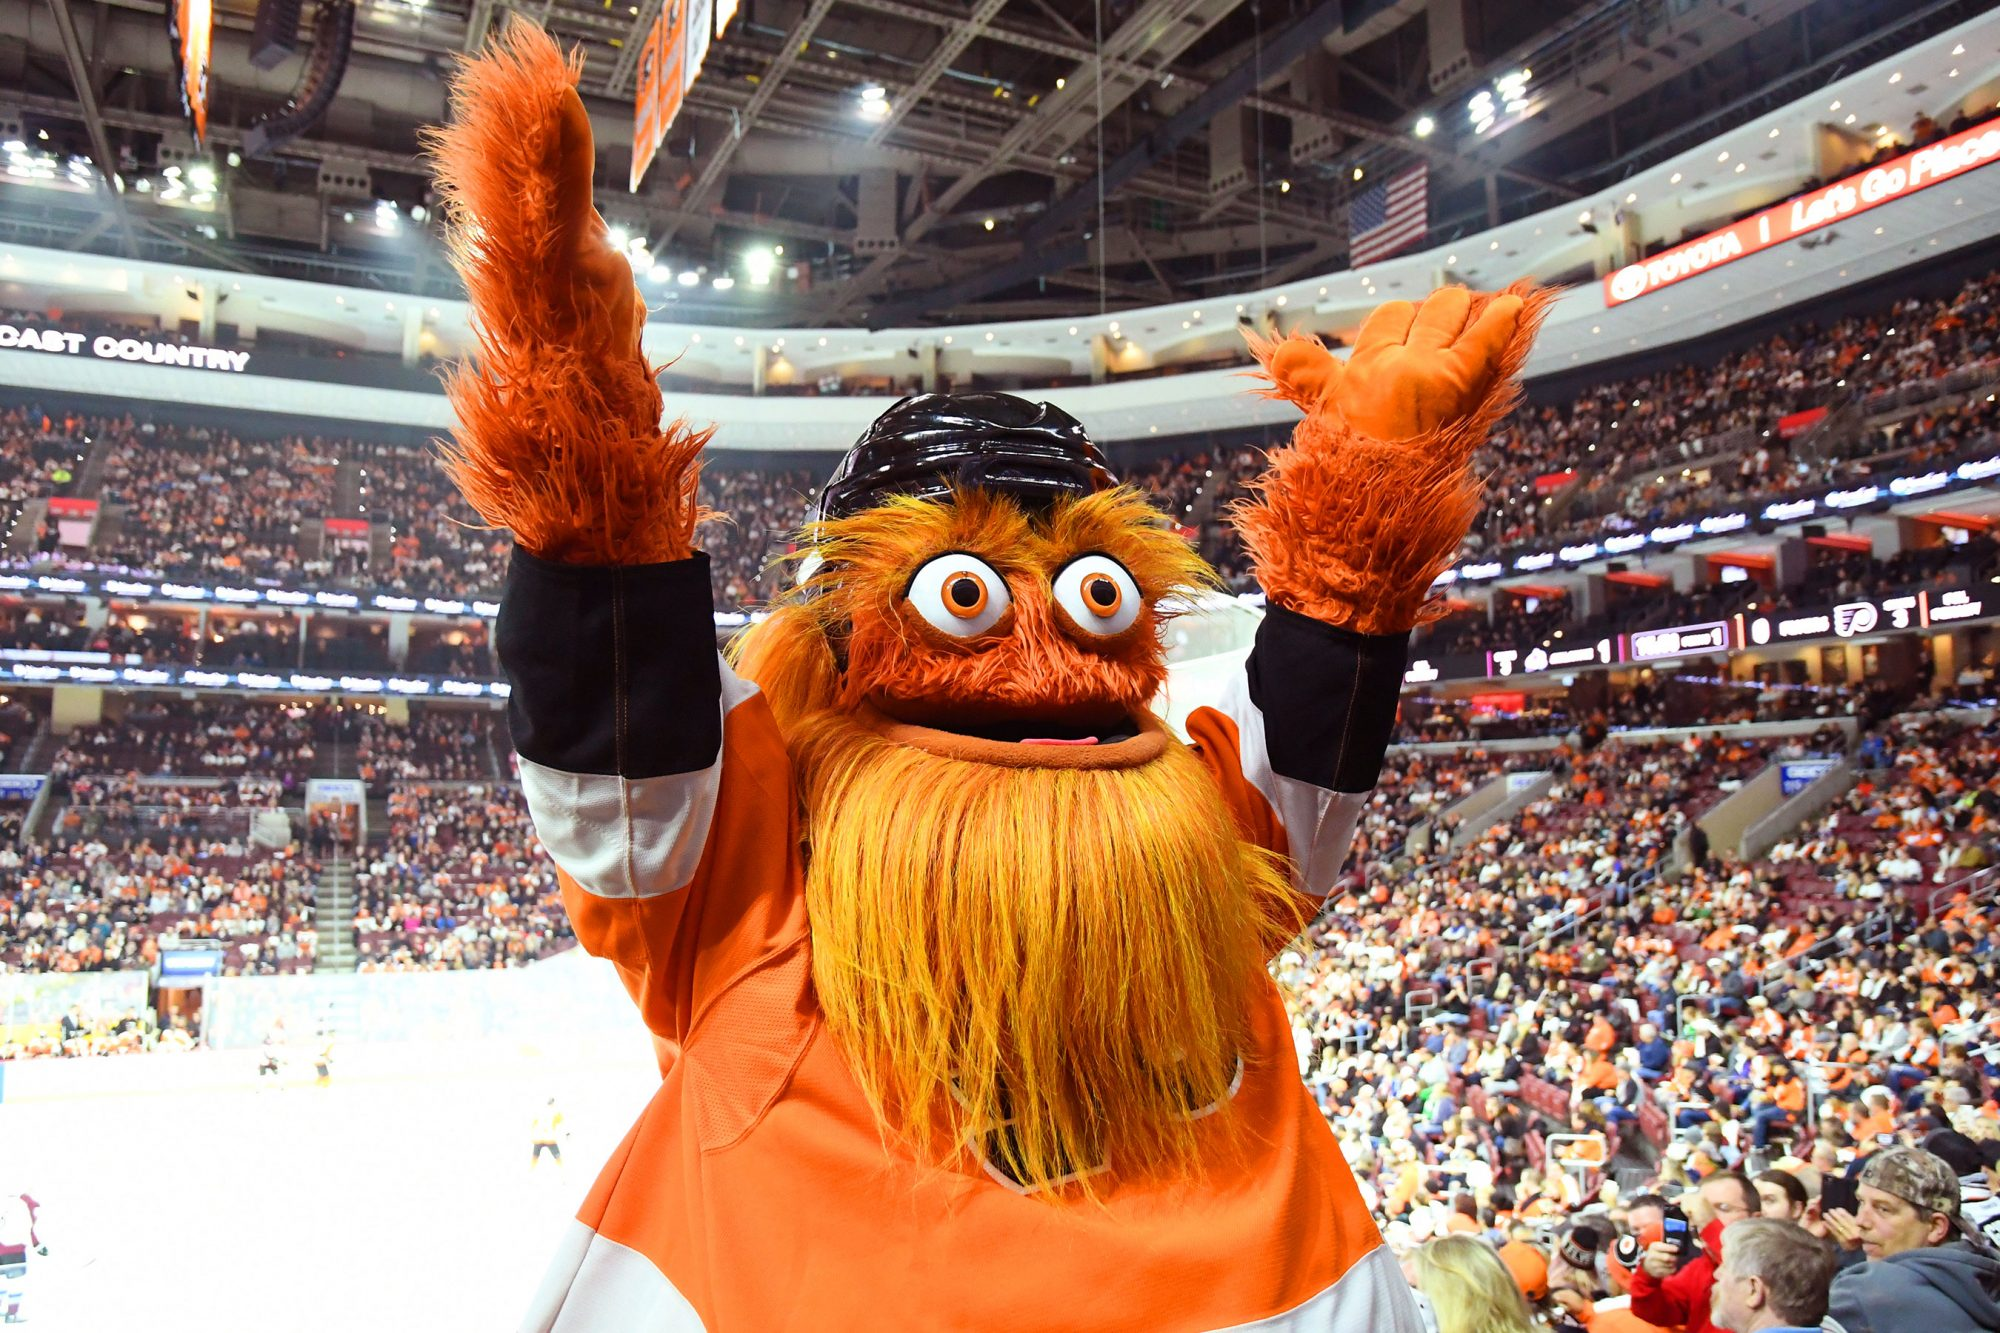 NHL: OCT 22 Avalanche at Flyers